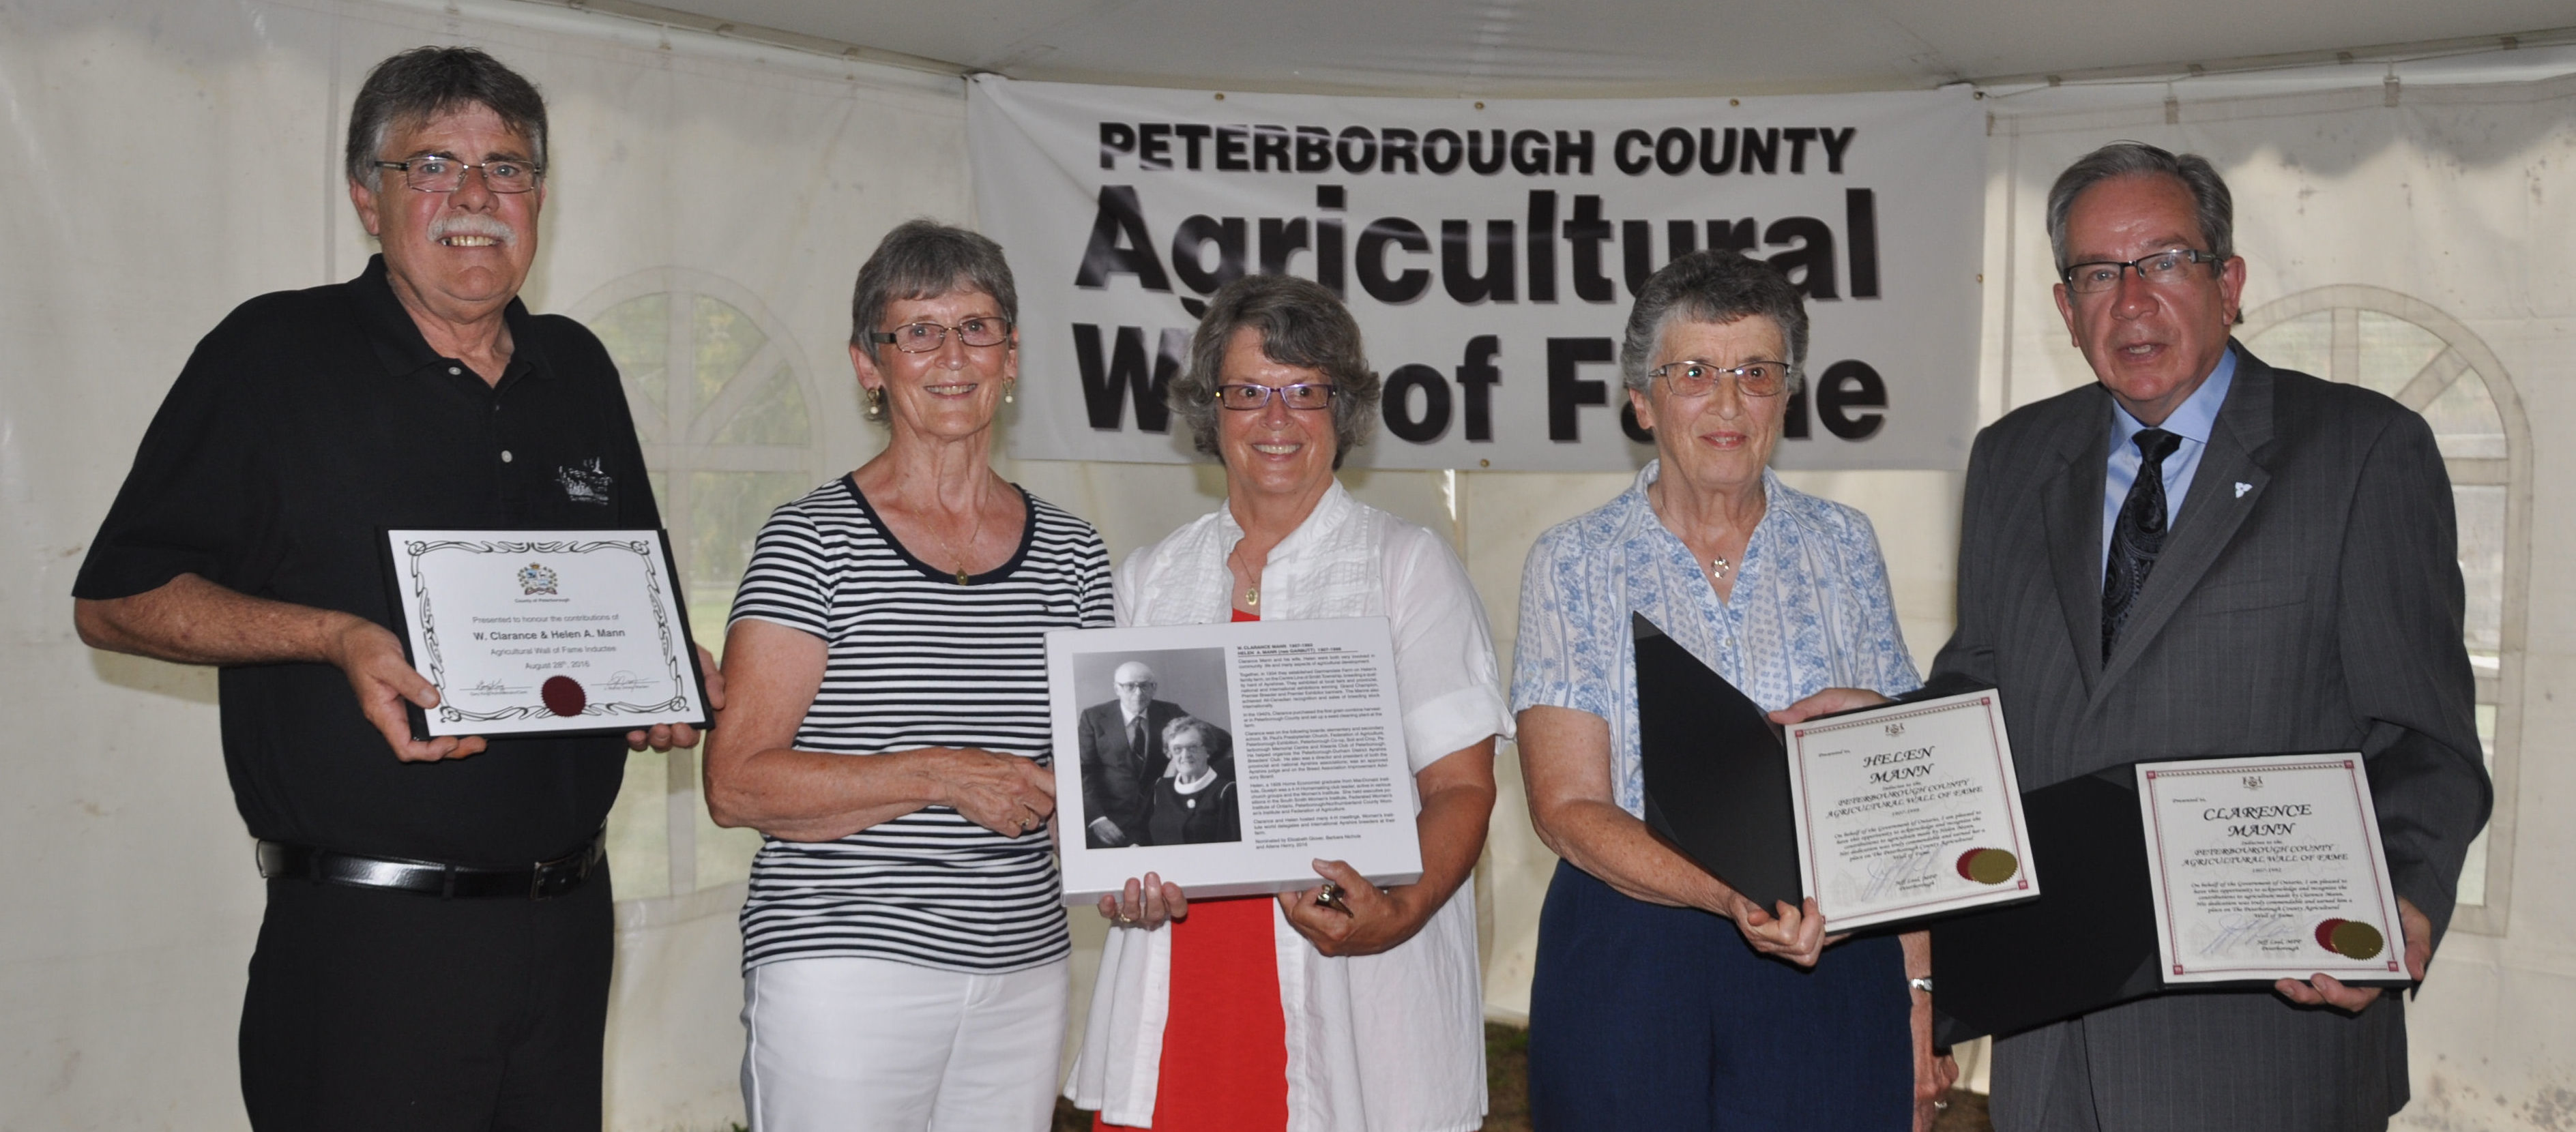 J Murray Jones, Warden, Ailene Henry, Elizabeth Glover, Barbara Nichols, Jeff Leal, MPP